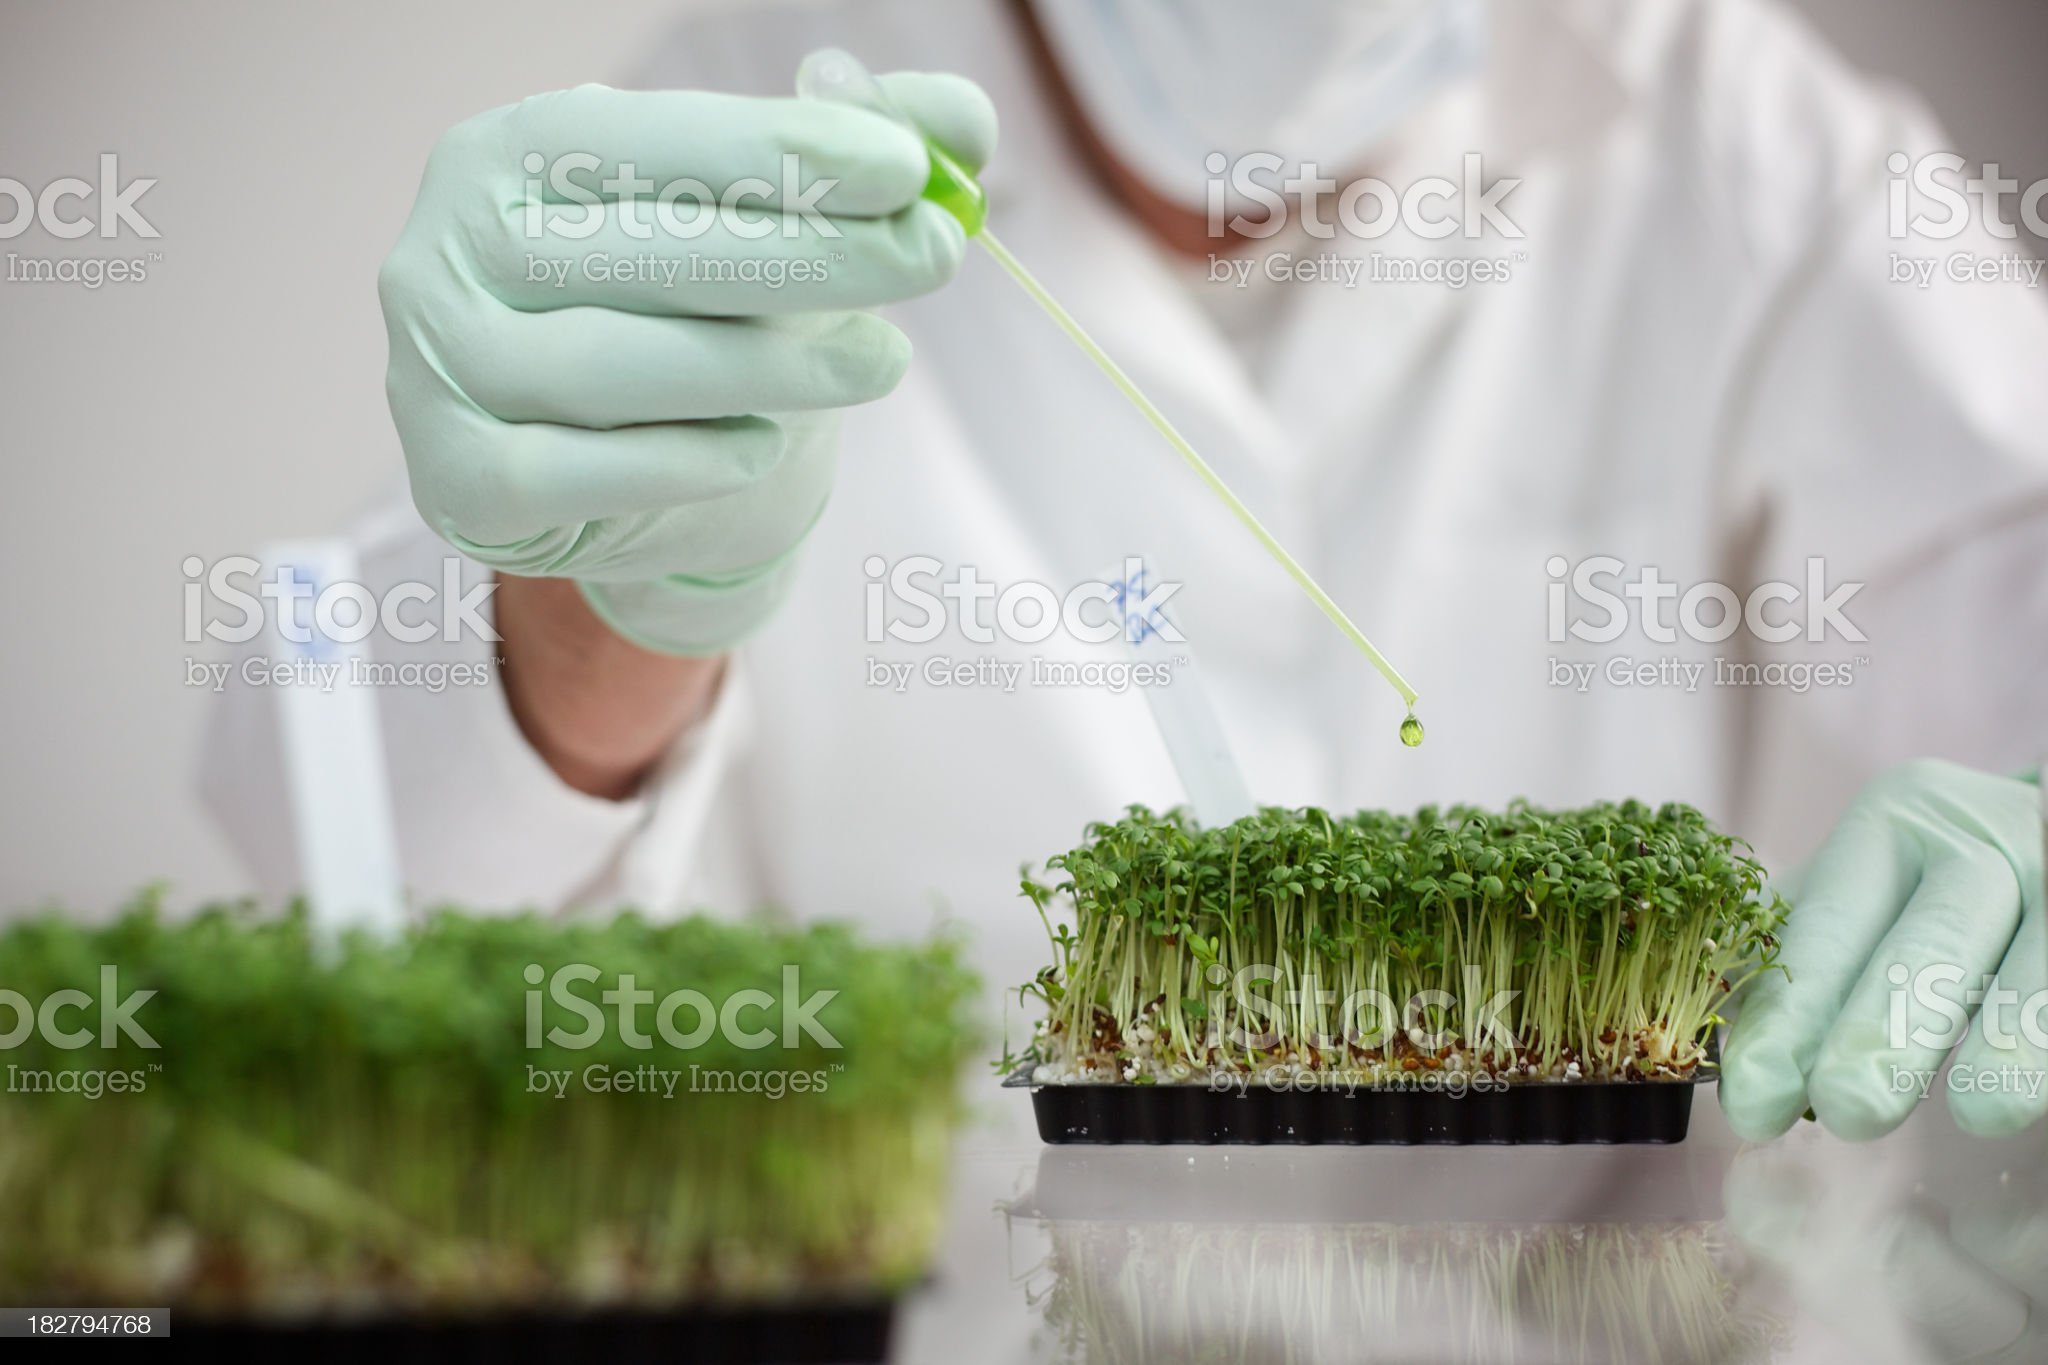 close-up of hands with pipette above cress, Scientific Experiment with food royalty-free stock photo